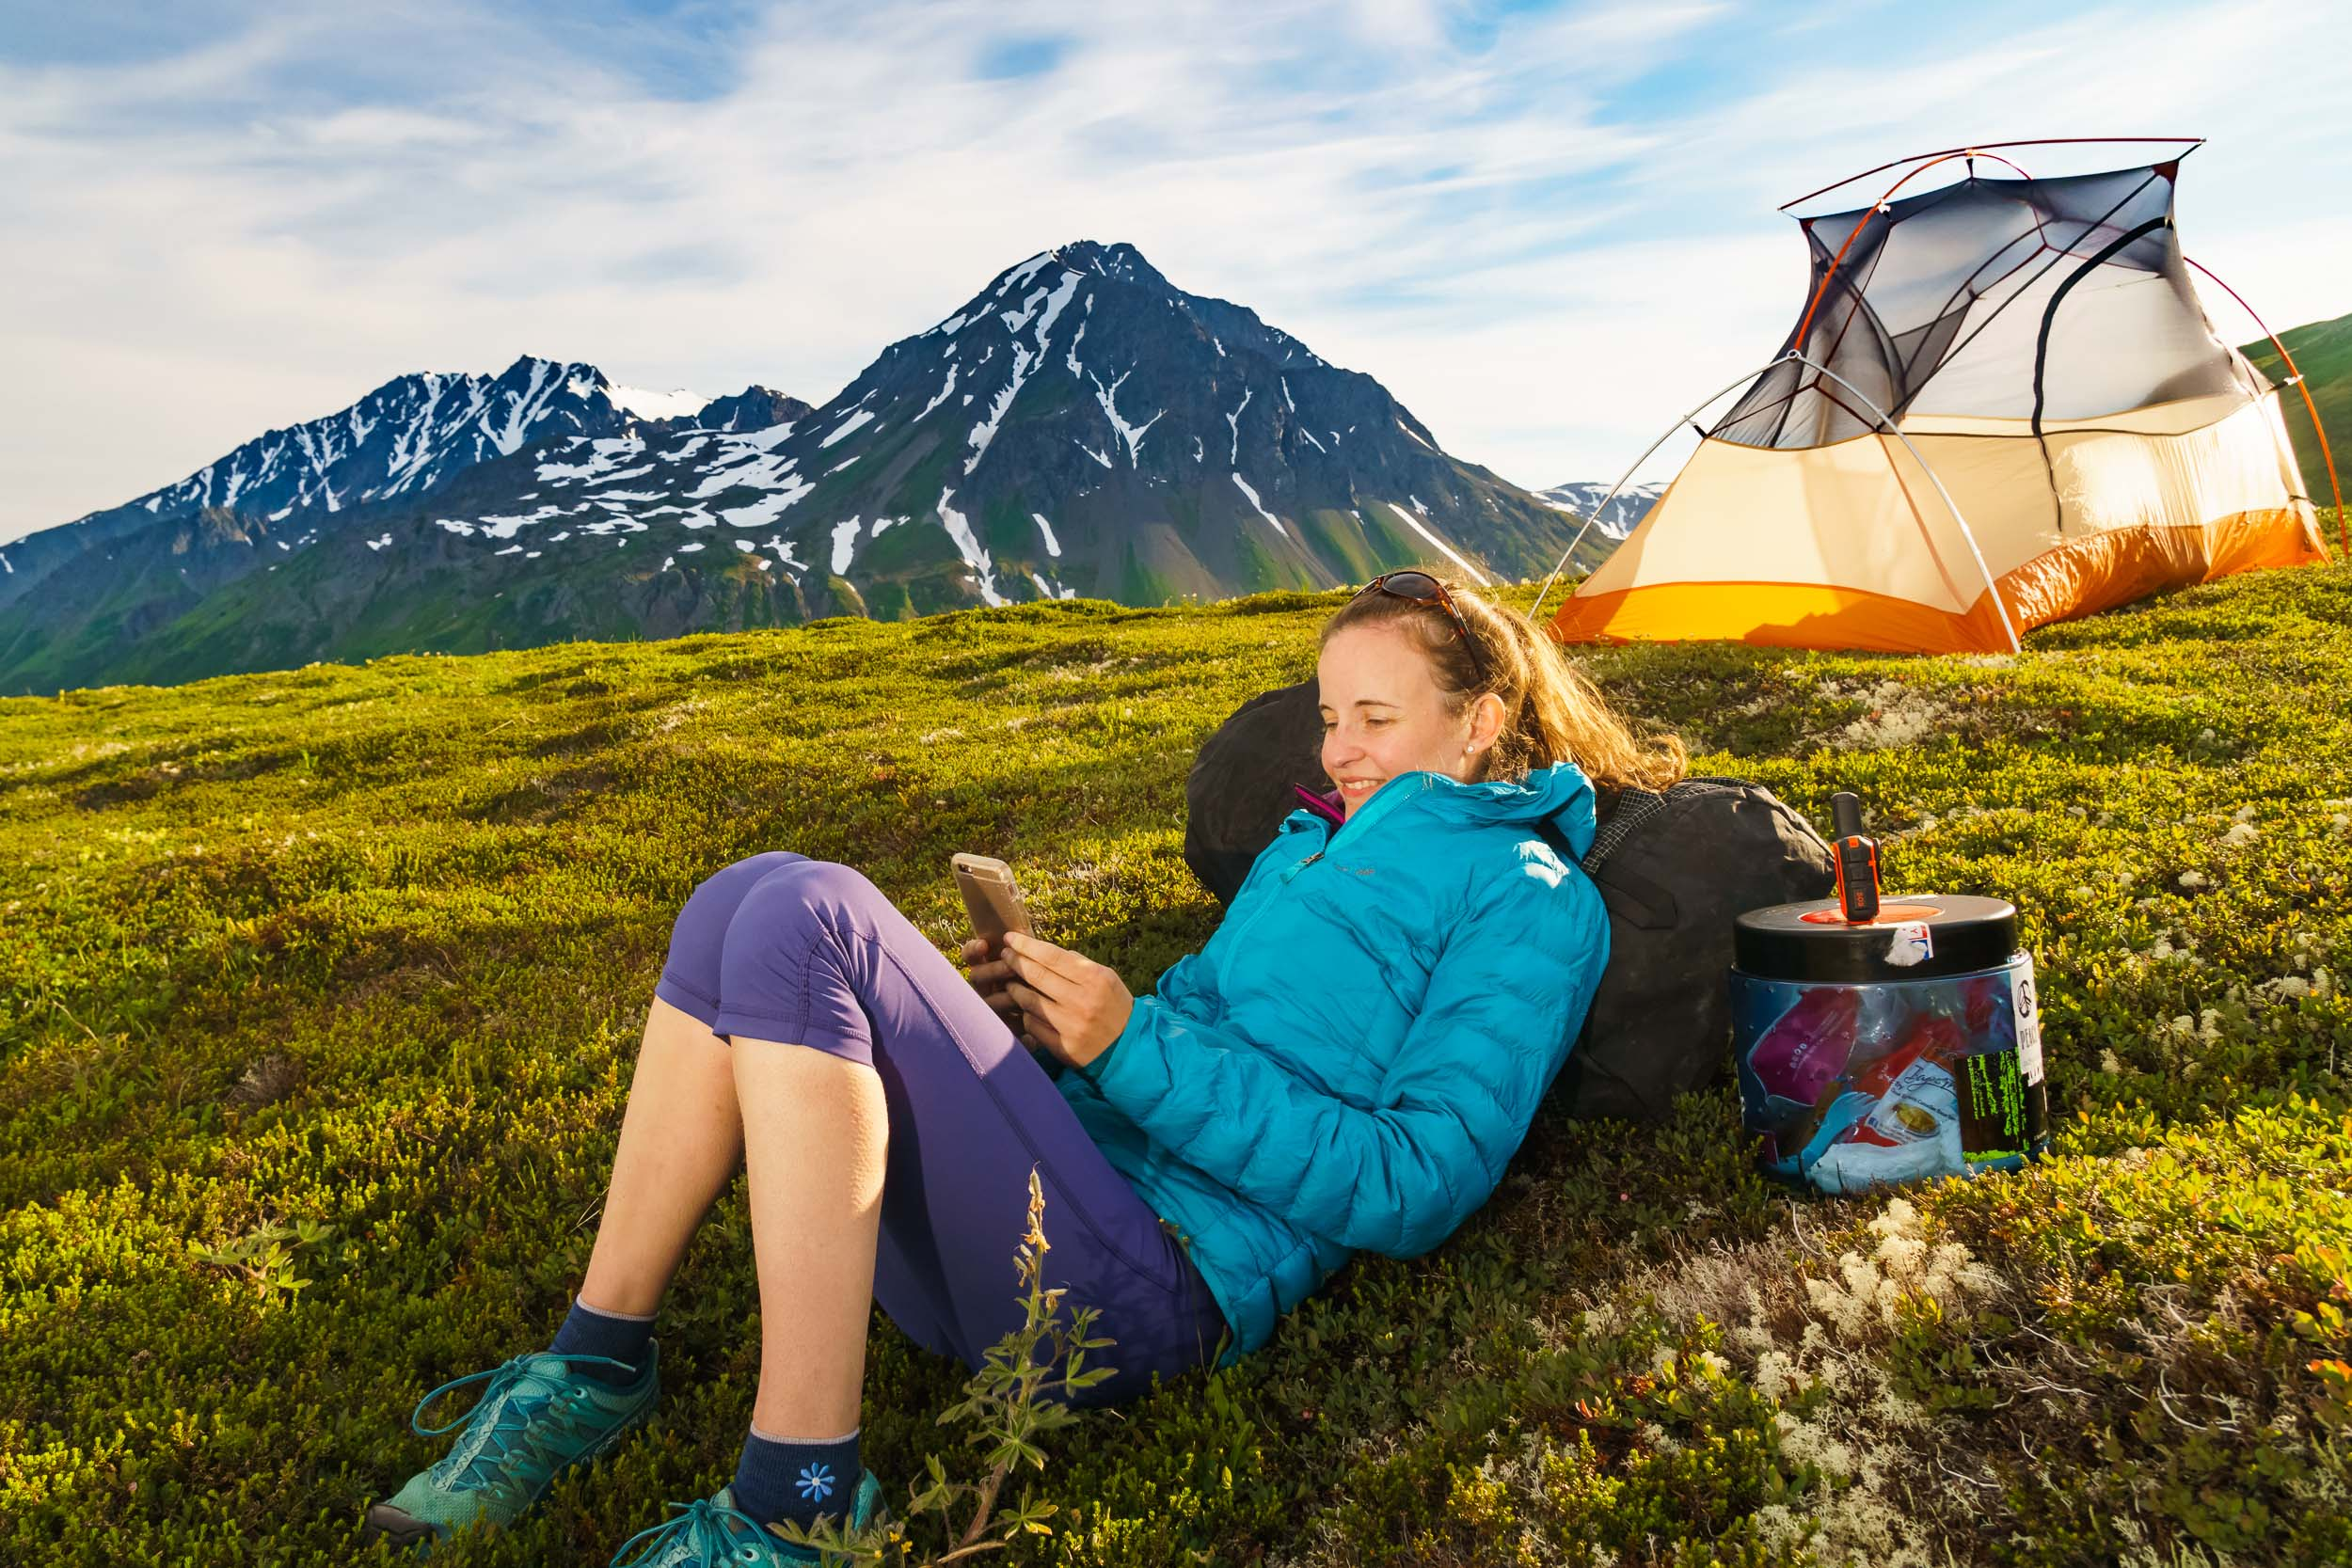 Alaska Outdoor Photographer Michael DeYoung Camp Adventure